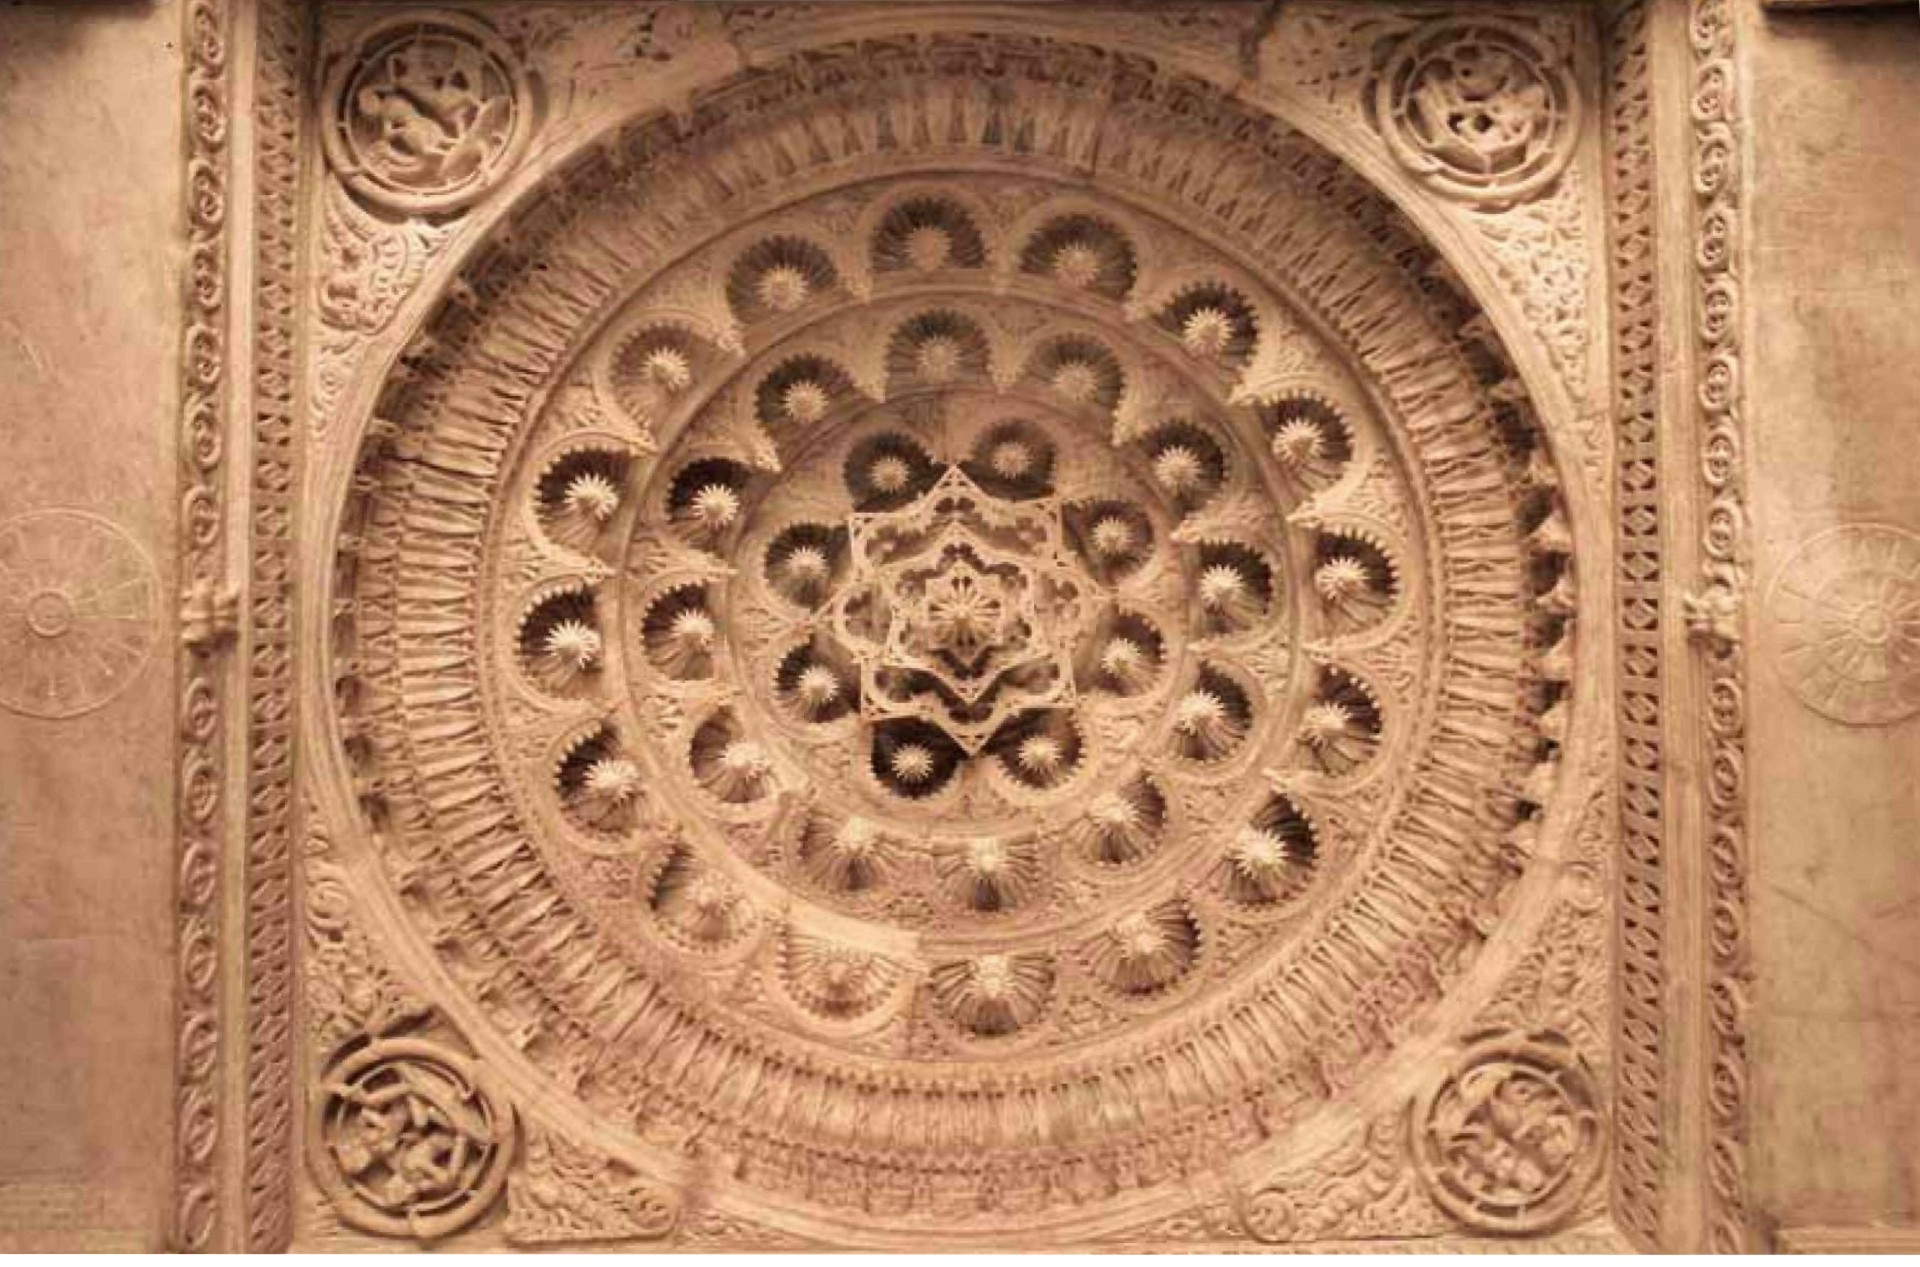 http://de.herenow4u.net/fileadmin/cms/Buecher/Jainismus-Tempel_von_Mount_Abu_und_Ranakpur/Exquisitely_elaborated_ceiling_in_Vimala_Vasahi_Temple__Mount_Abu.jpg